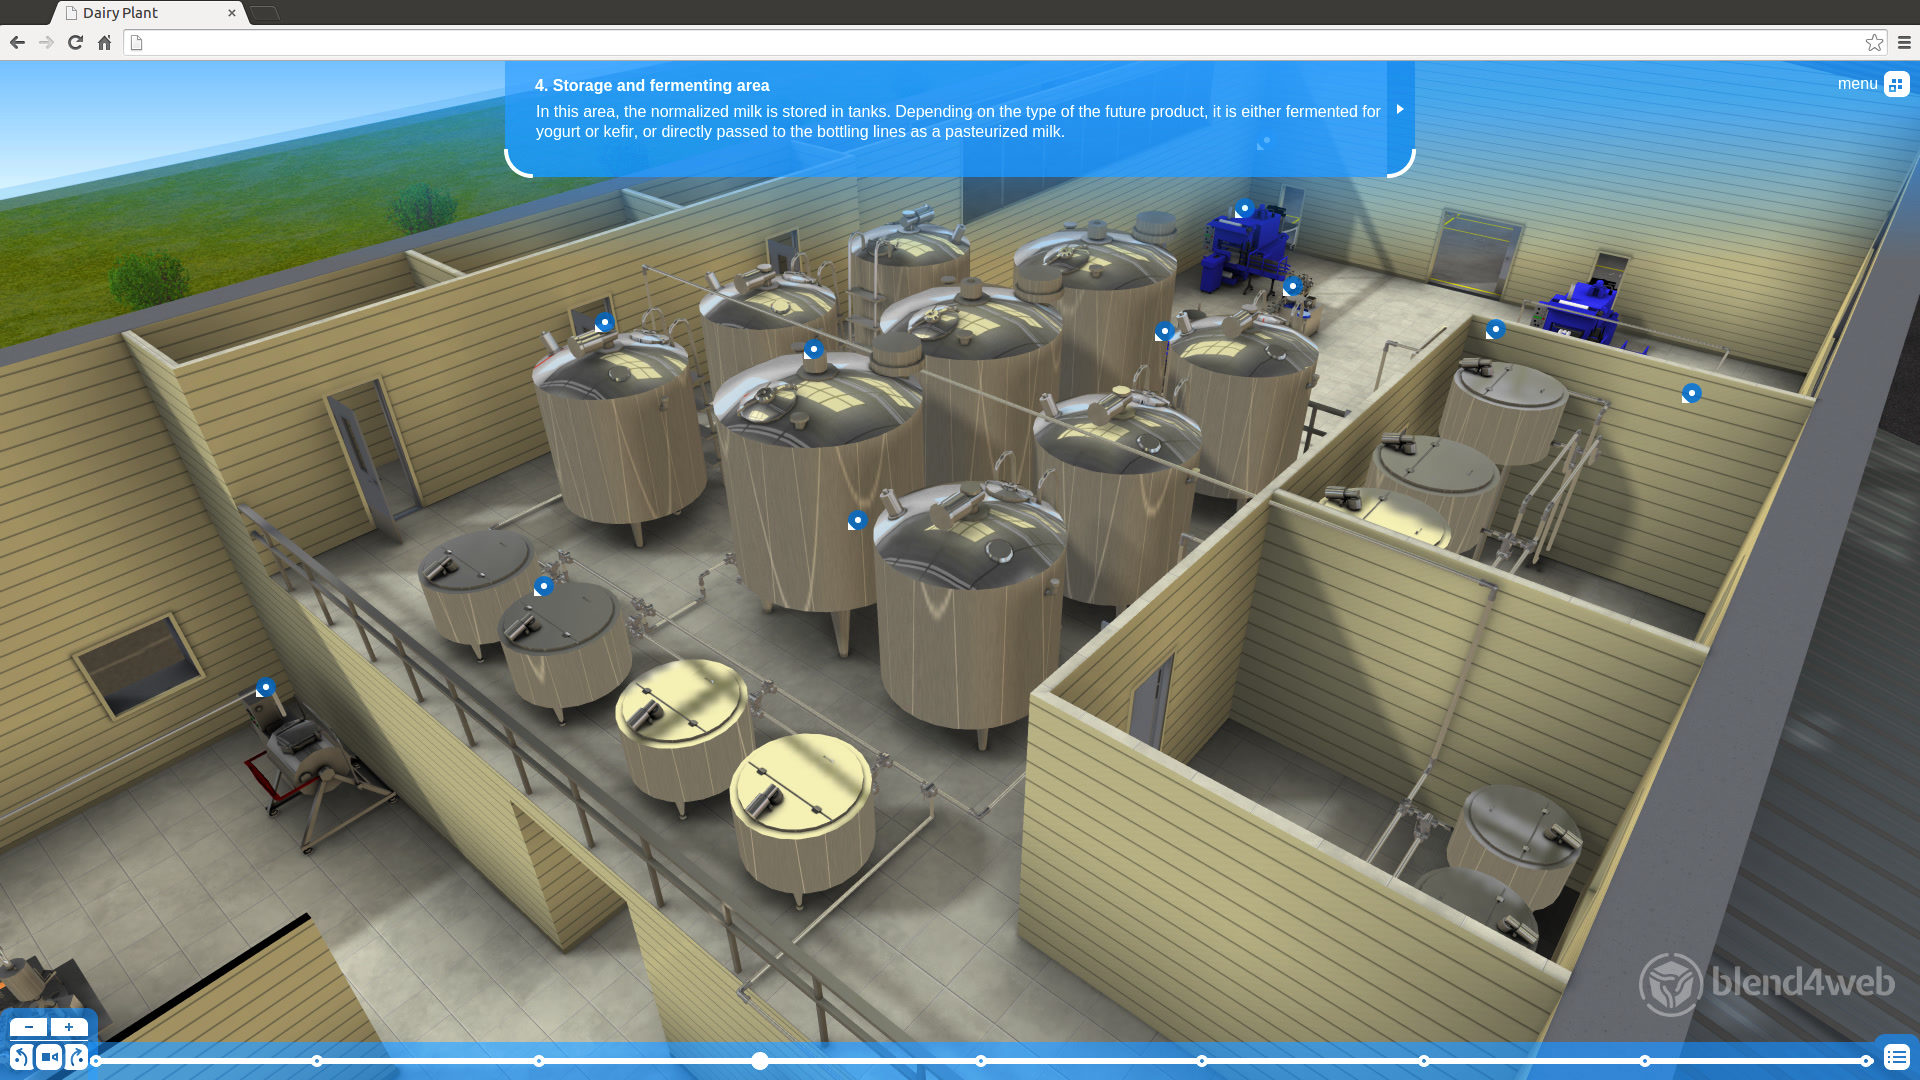 Dairy Plant preview